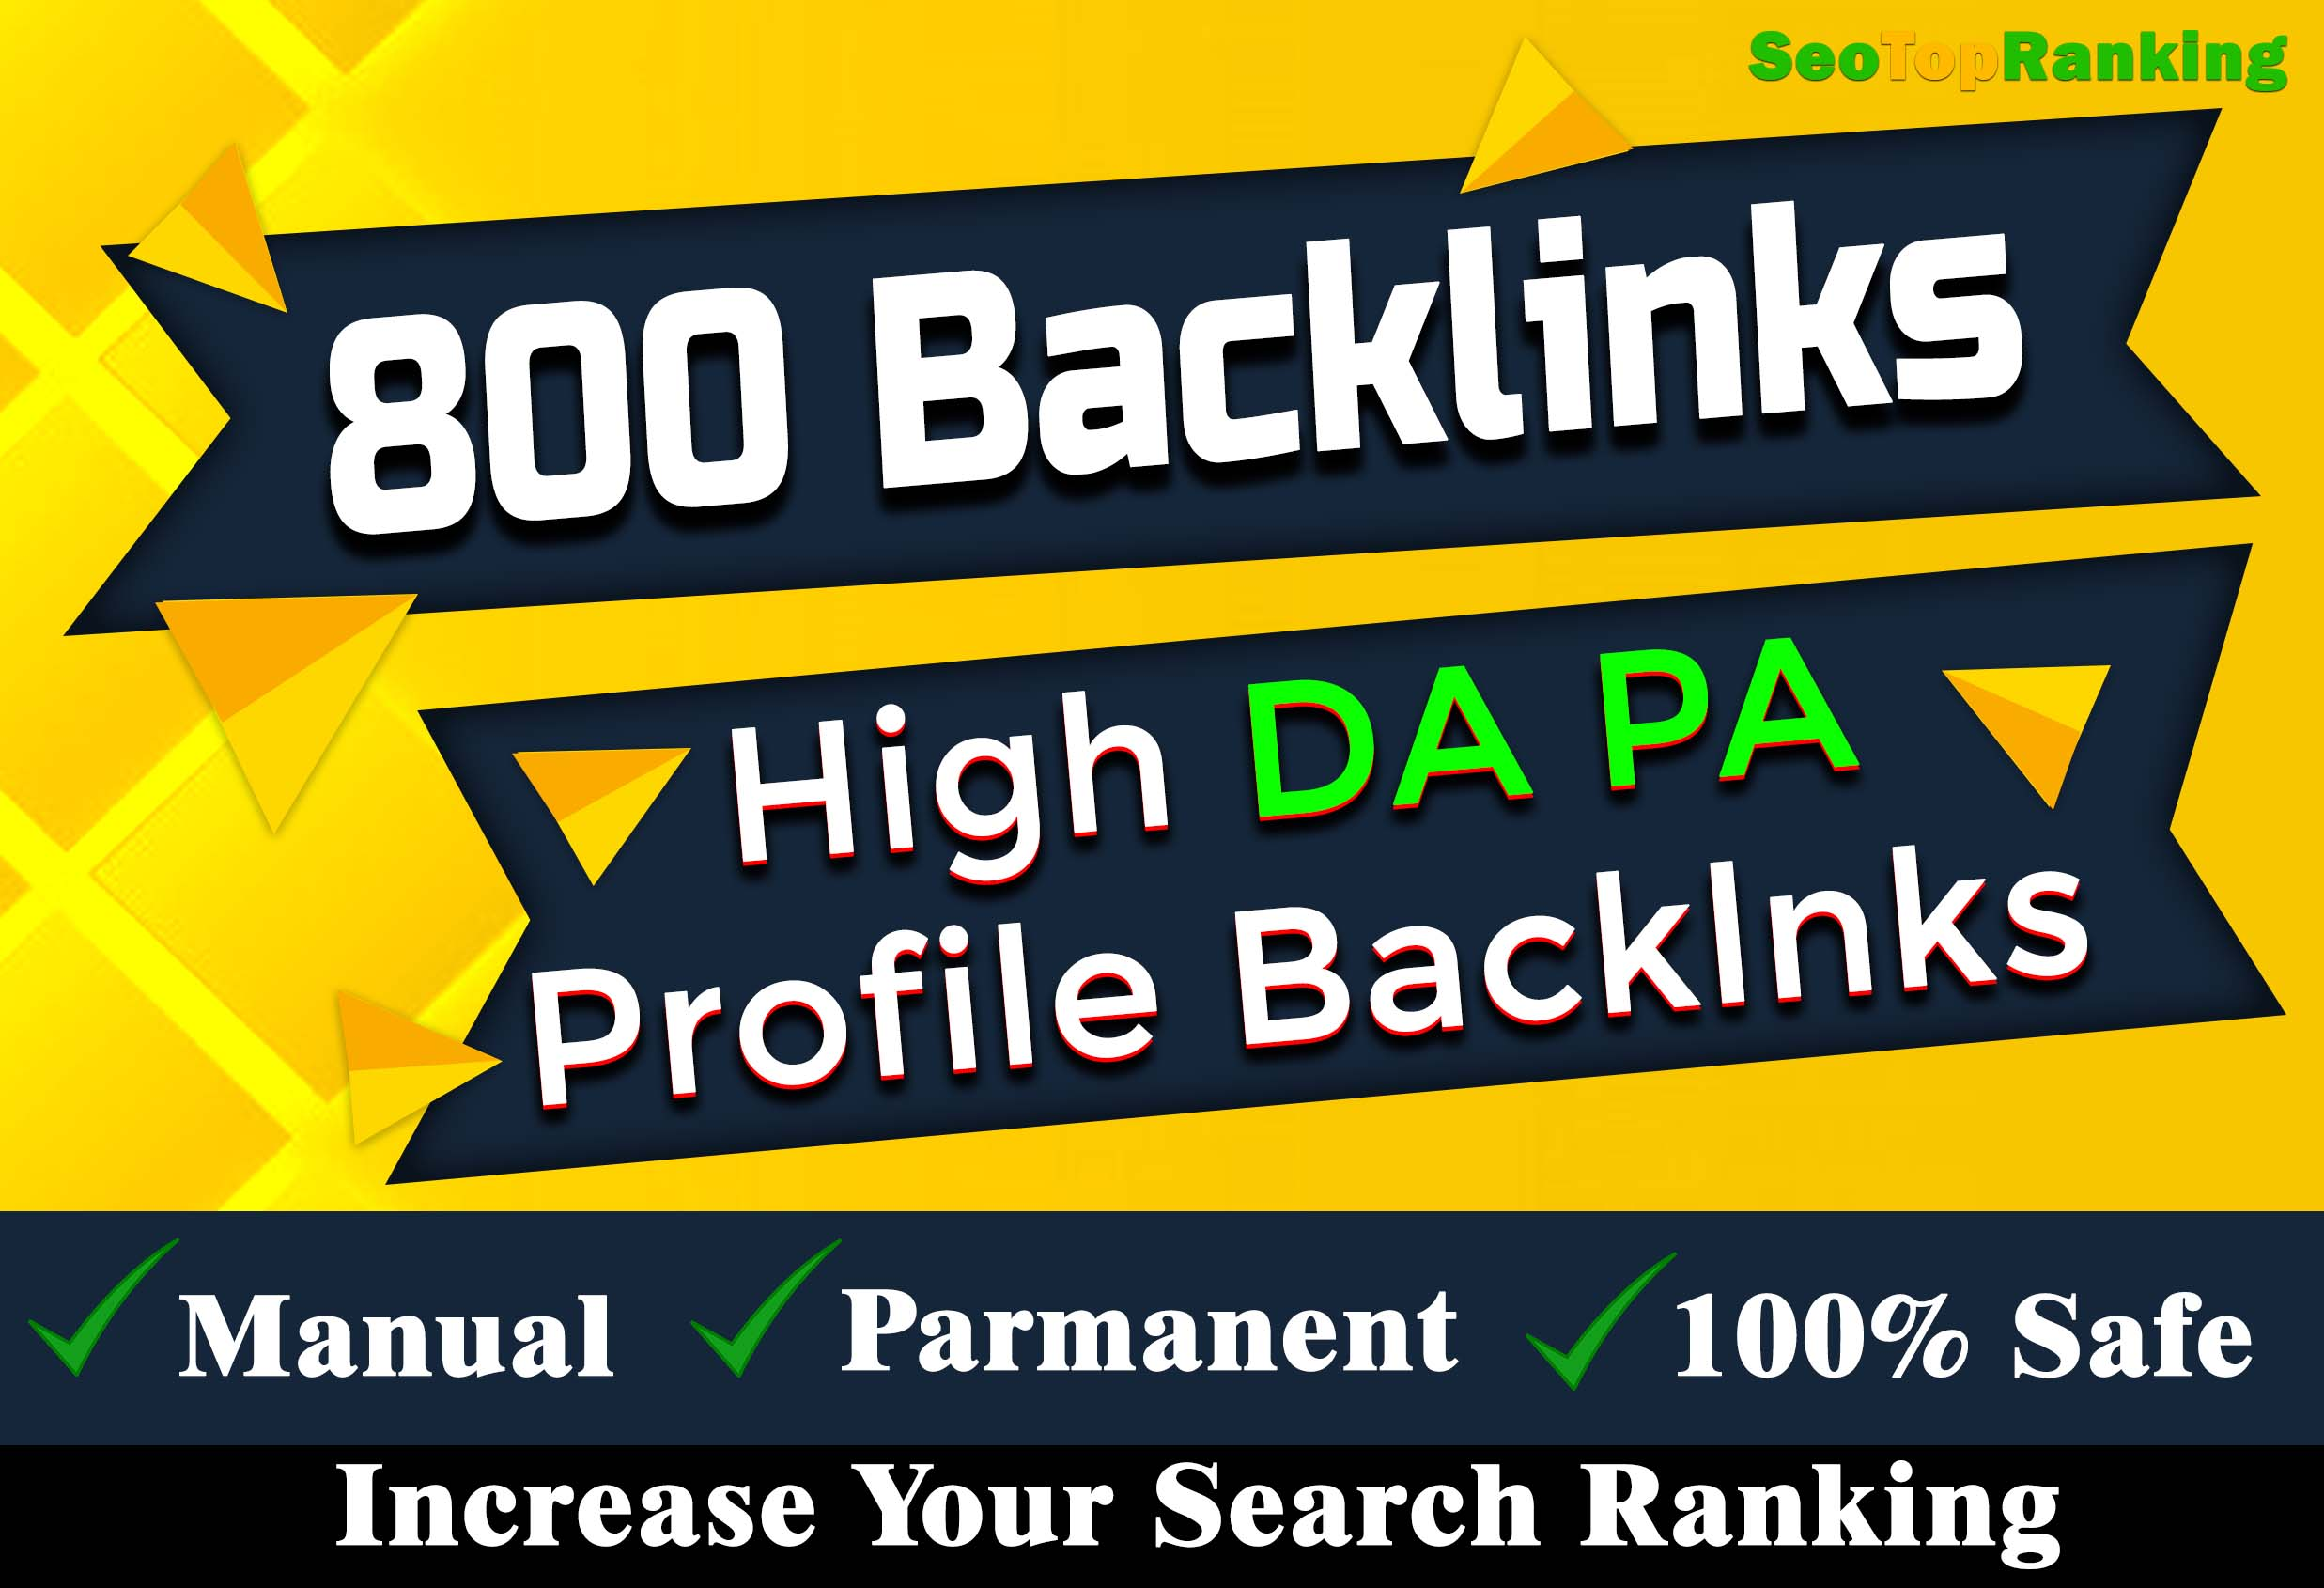 Manually 800 qualityfull profile backlinks DA 80+ SEO link building Service